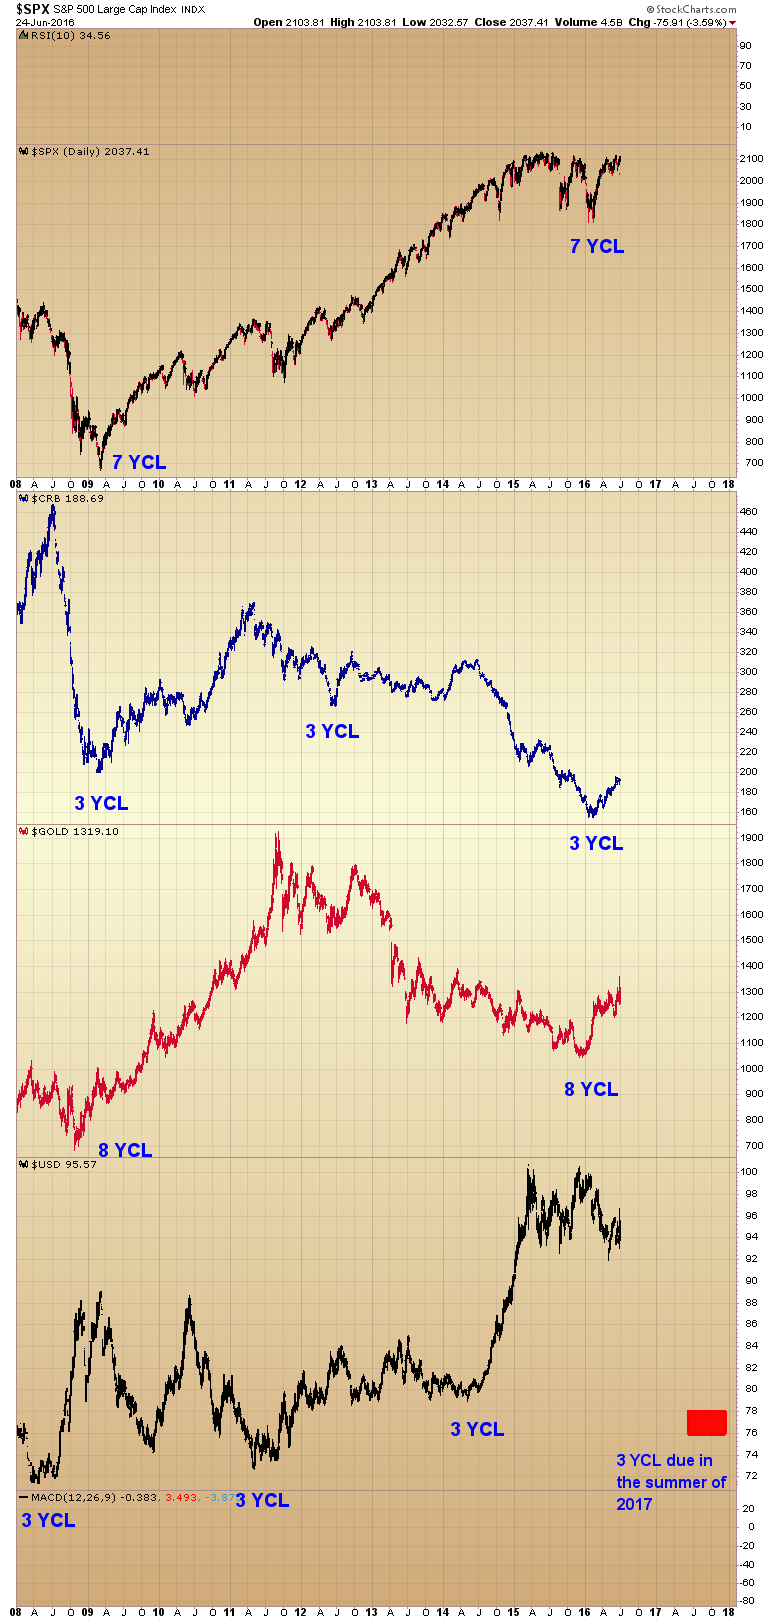 multi year cycle lows